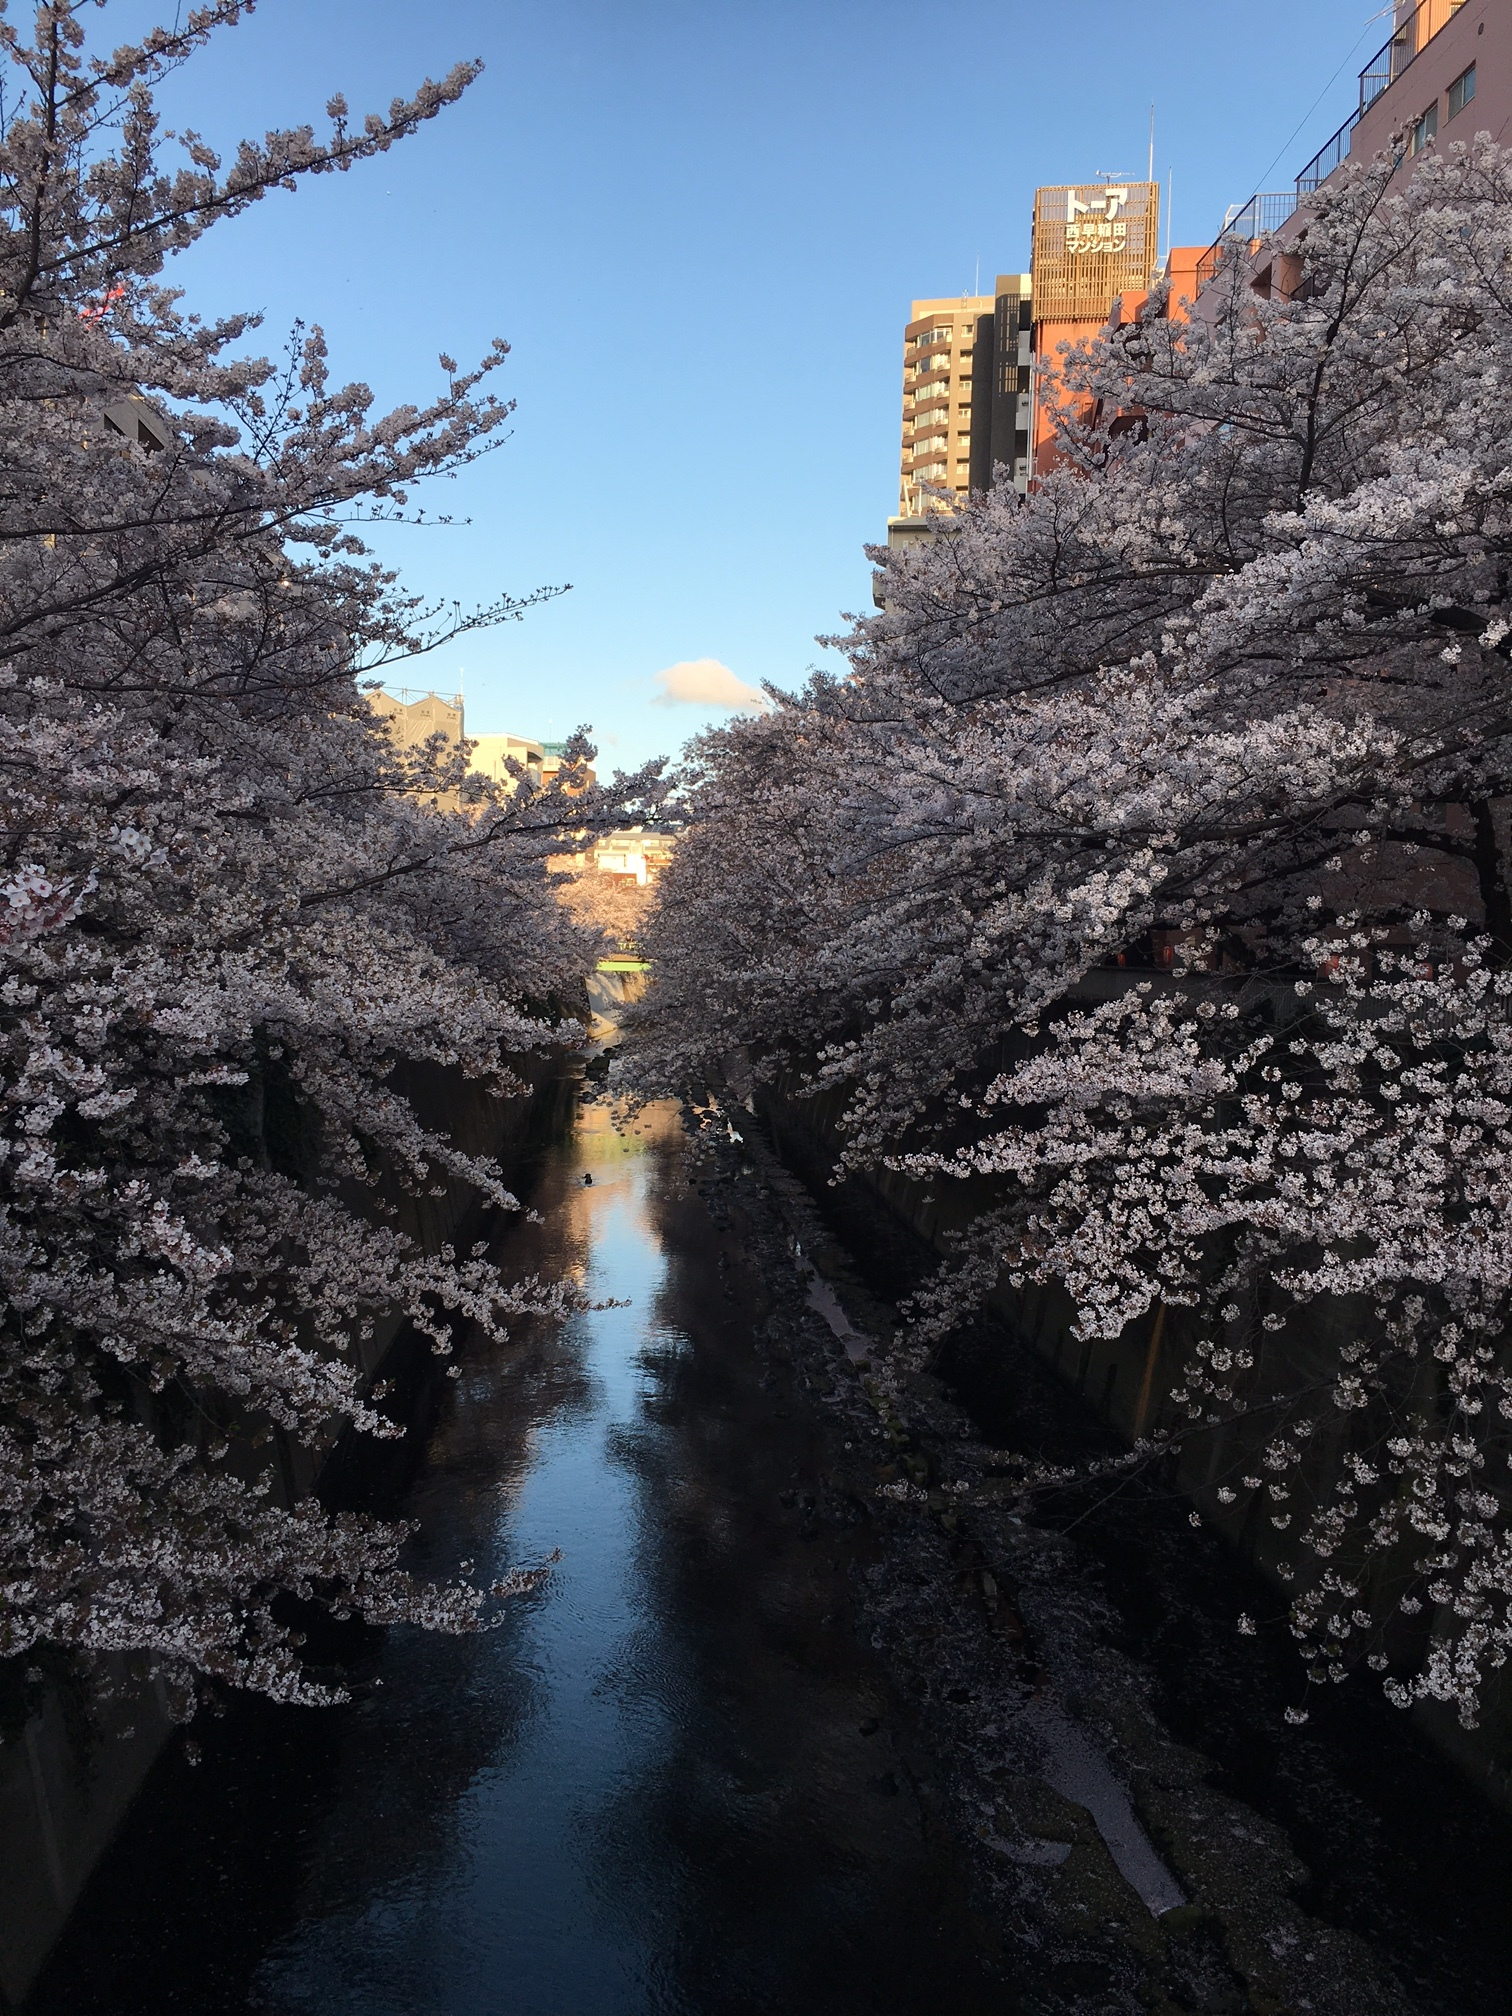 A shot of the same river. Even in the Tokyo metropolis, Japan has so much nature which makes it easy to observe the changing seasons. I really value the times when I can be alone, or at least away from the crowds, while I'm walking through the many parks and gardens which are found throughout the city.